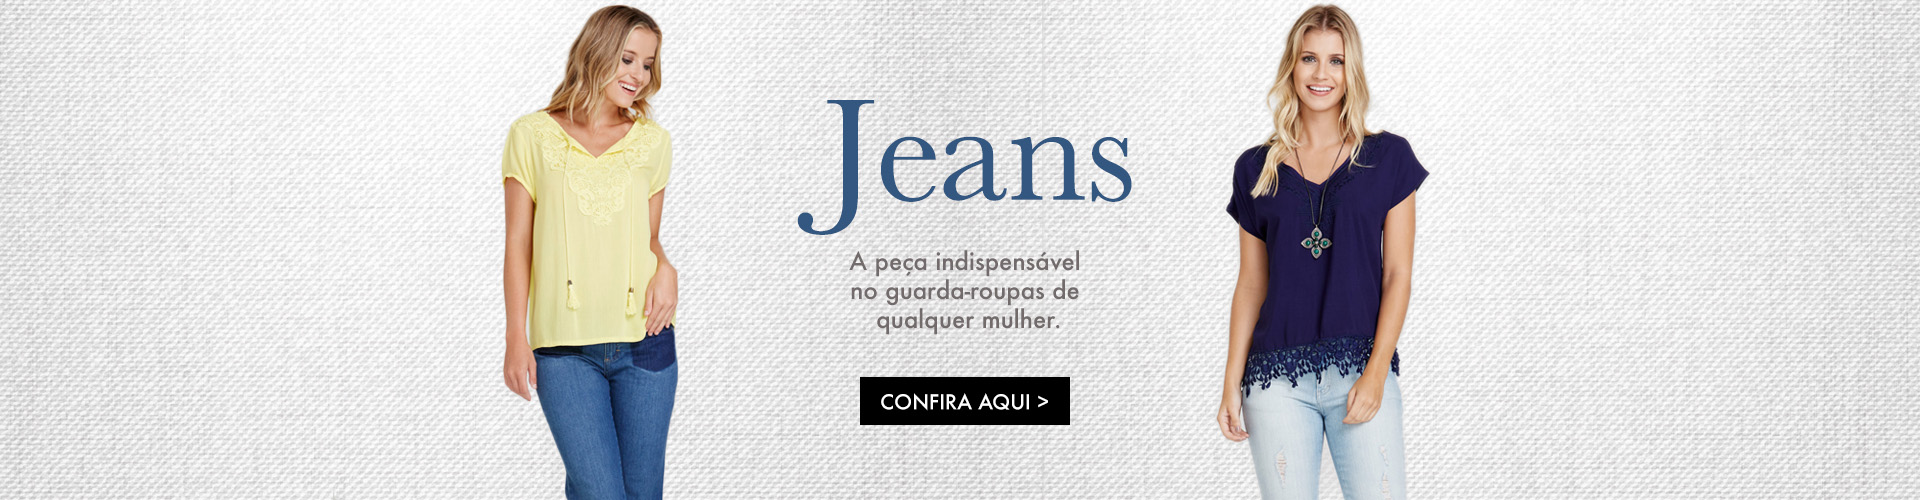 BANNER JEANS